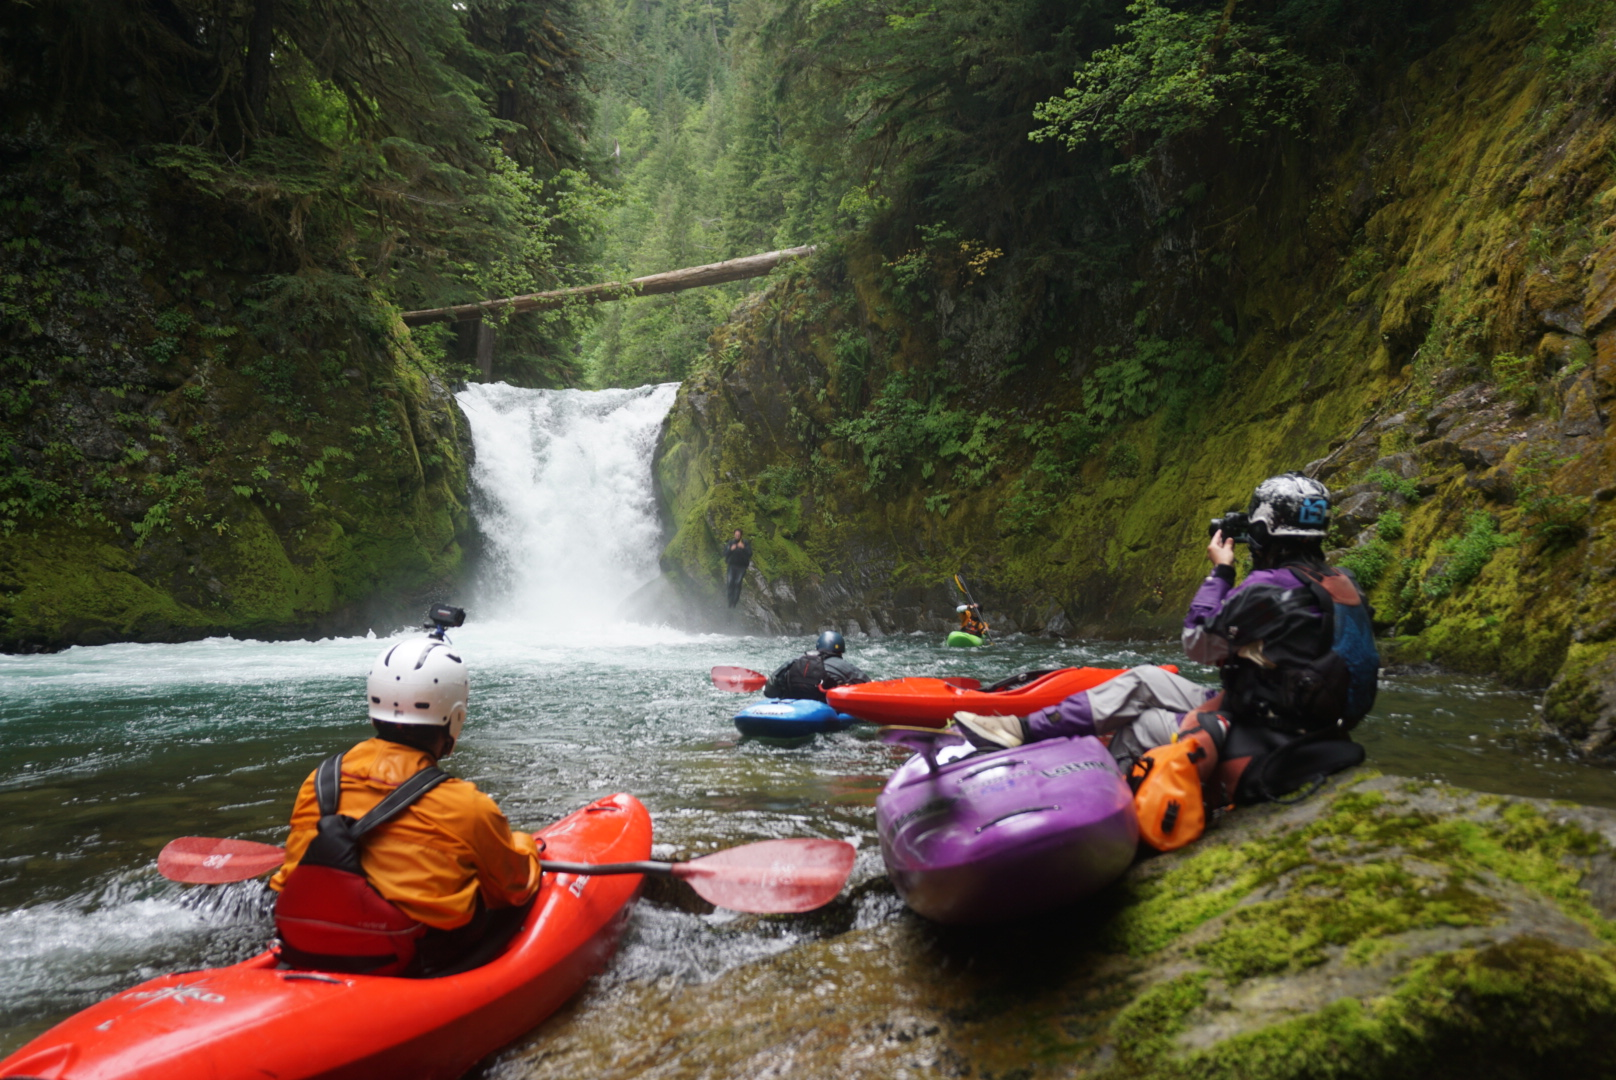 A paddler portages an unnamed falls on Yellow Jacket creek in Washington. The falls lands on a shelf makingh the line between successful run and serious injury very thin -photo by Adam Edwards